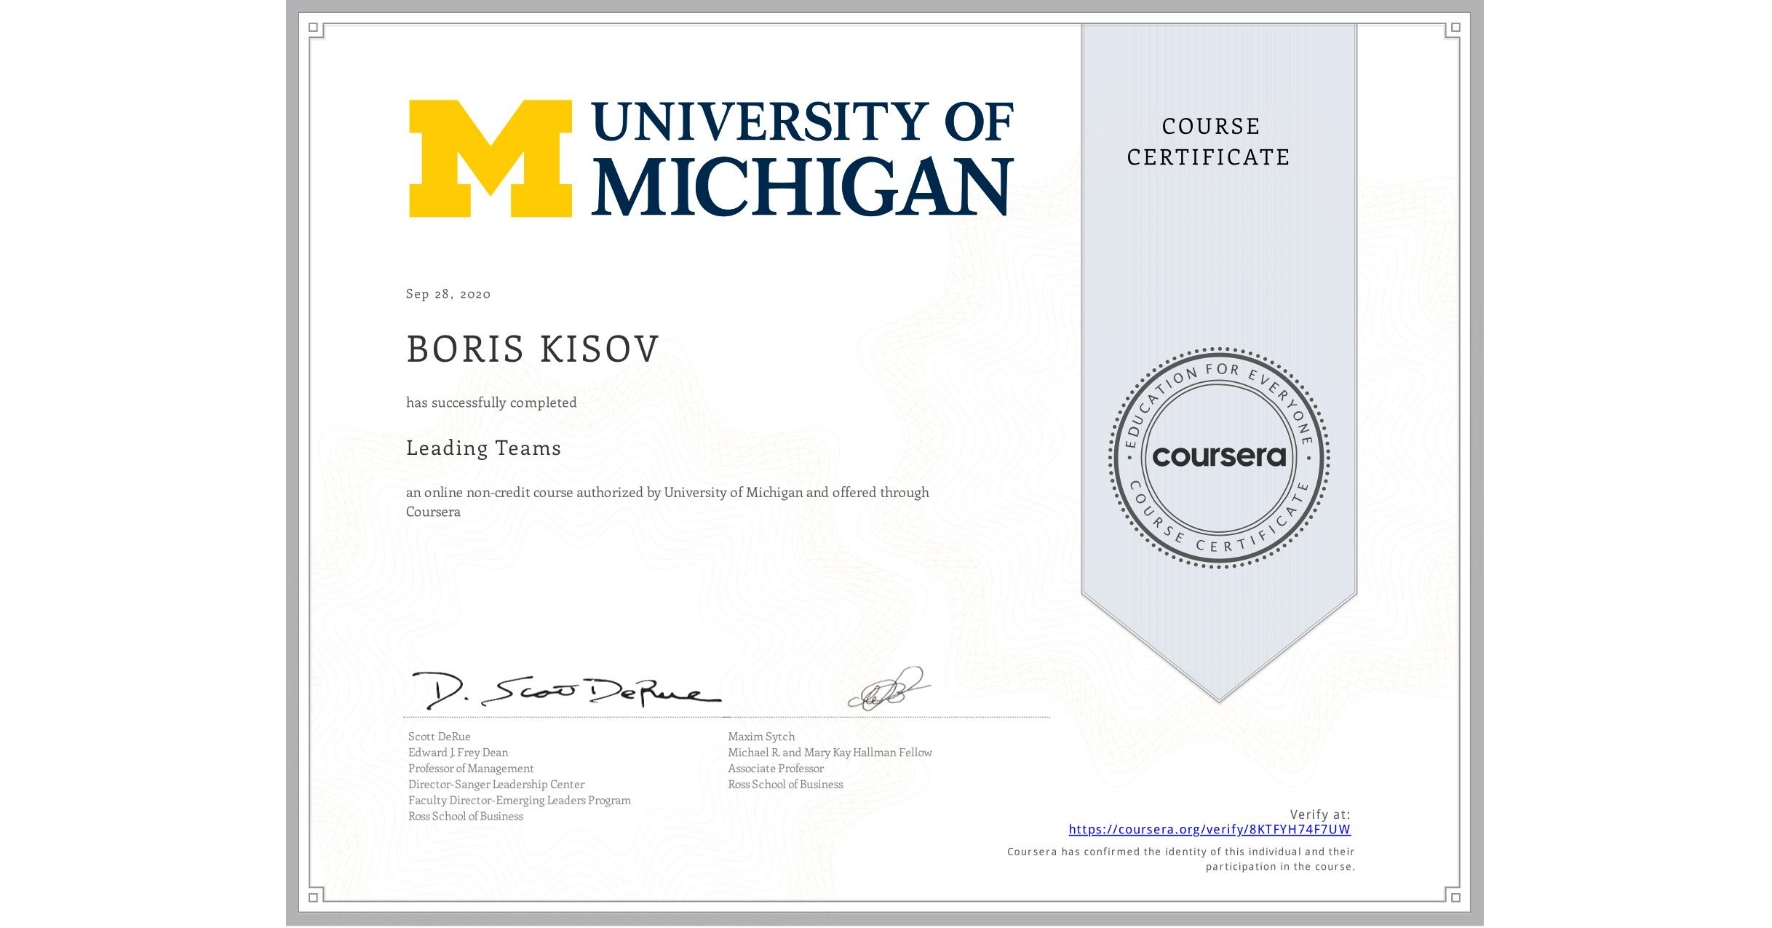 View certificate for BORIS KISOV, Leading Teams, an online non-credit course authorized by University of Michigan and offered through Coursera